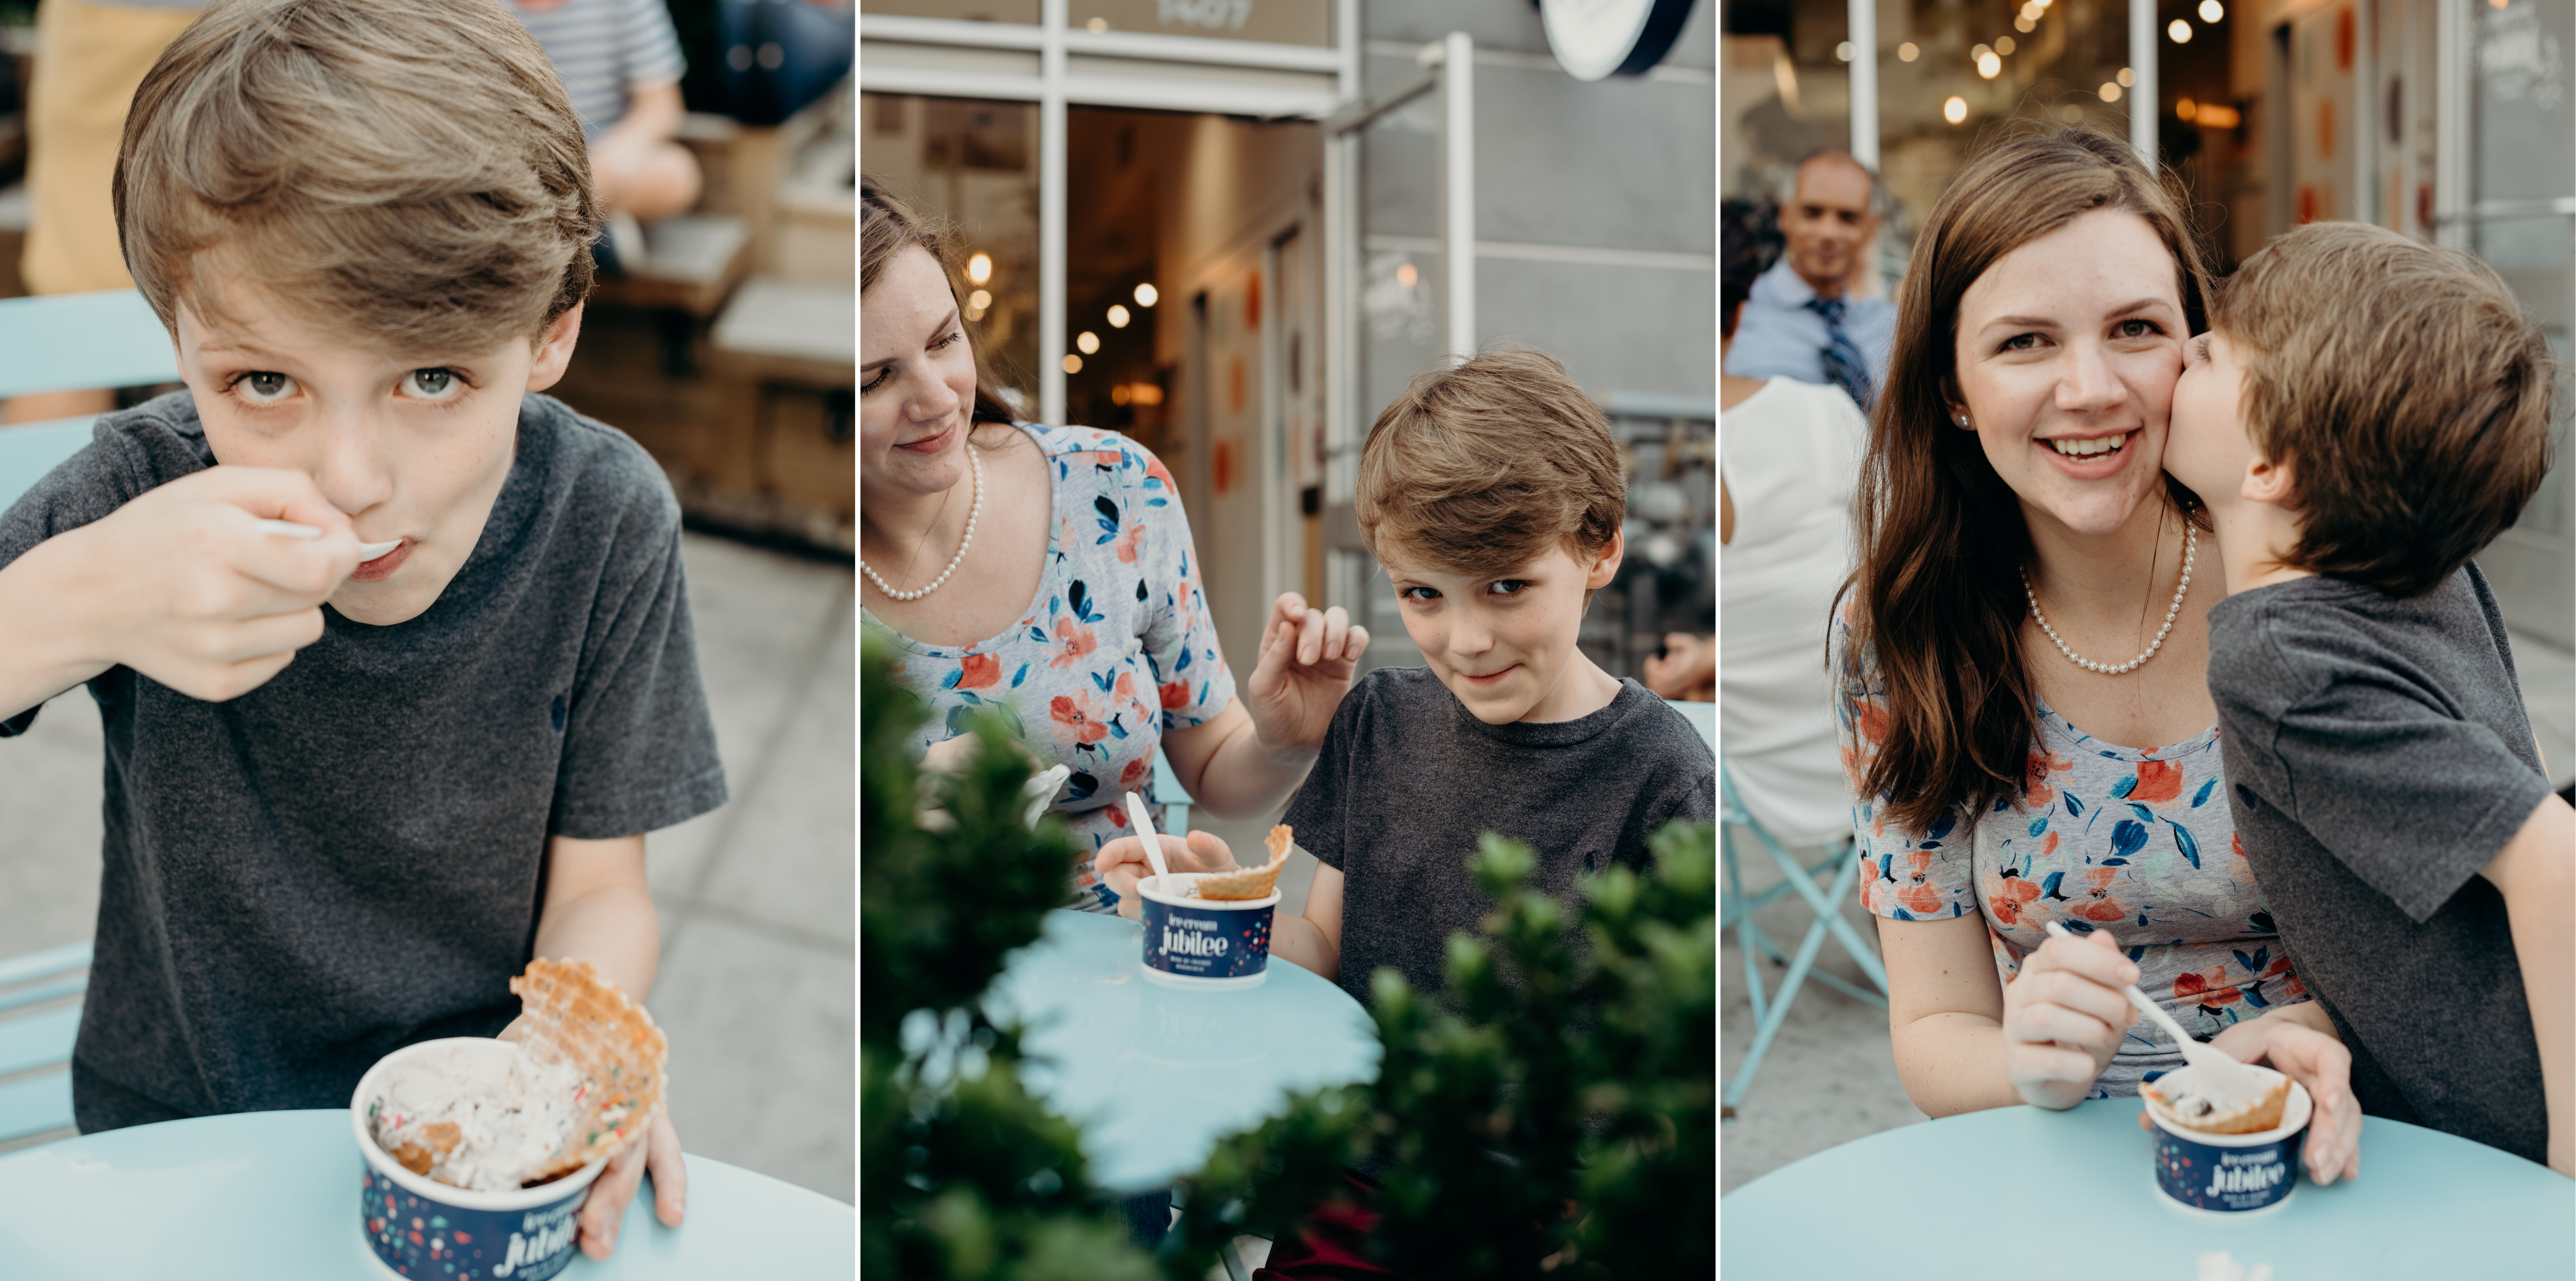 mother-son-ice-cream-date-best-family-photographer-washington-dc-lifestyle30.jpg